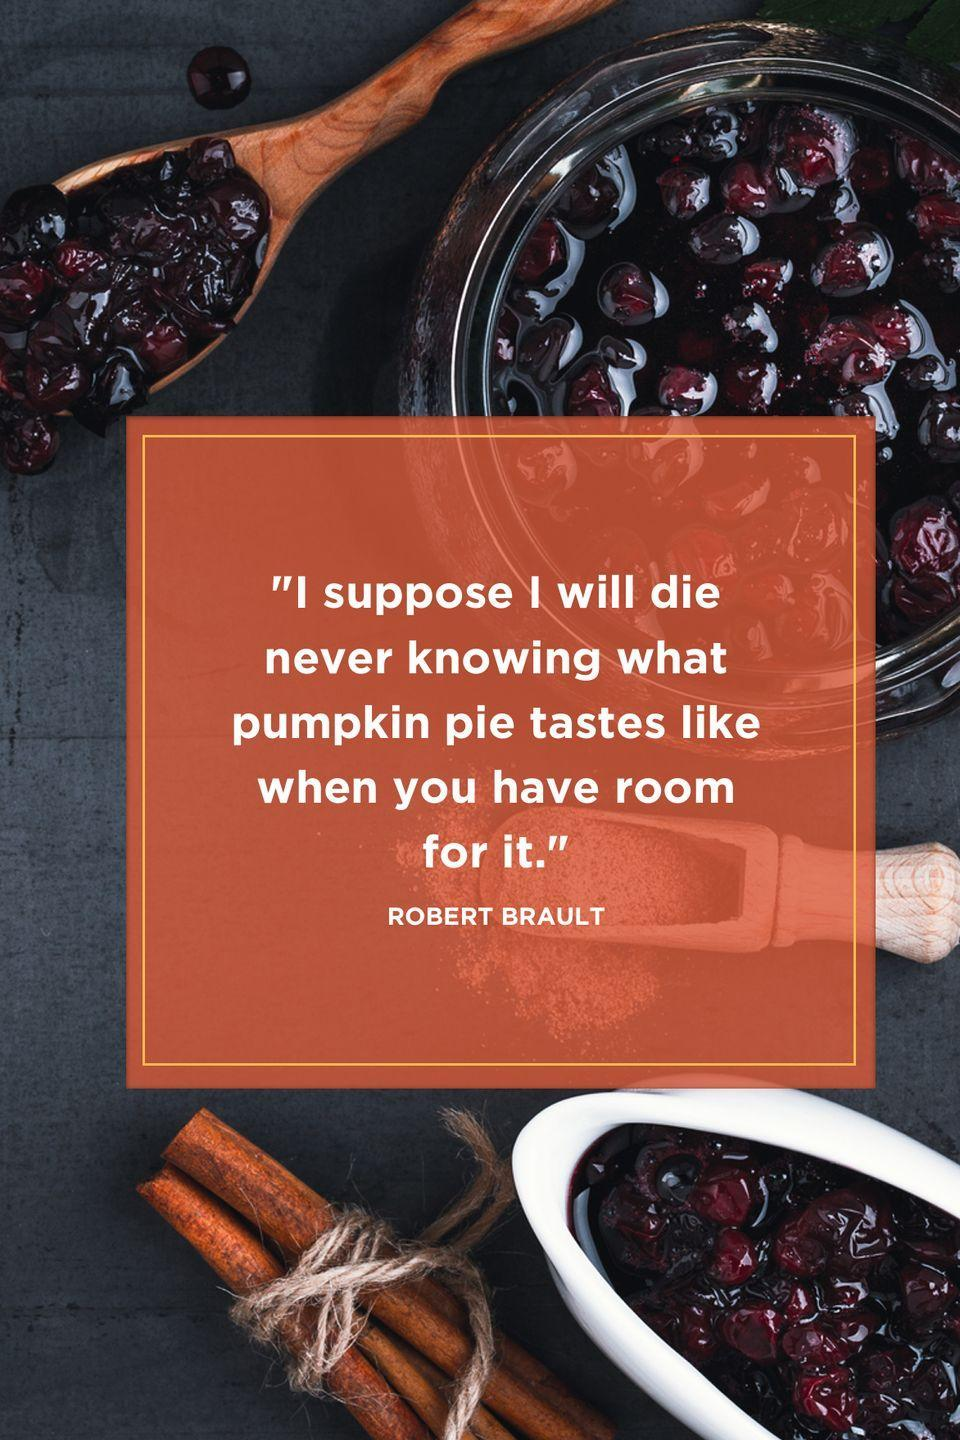 "<p>""I suppose I will die never knowing what pumpkin pie tastes like when you have room for it.""</p>"